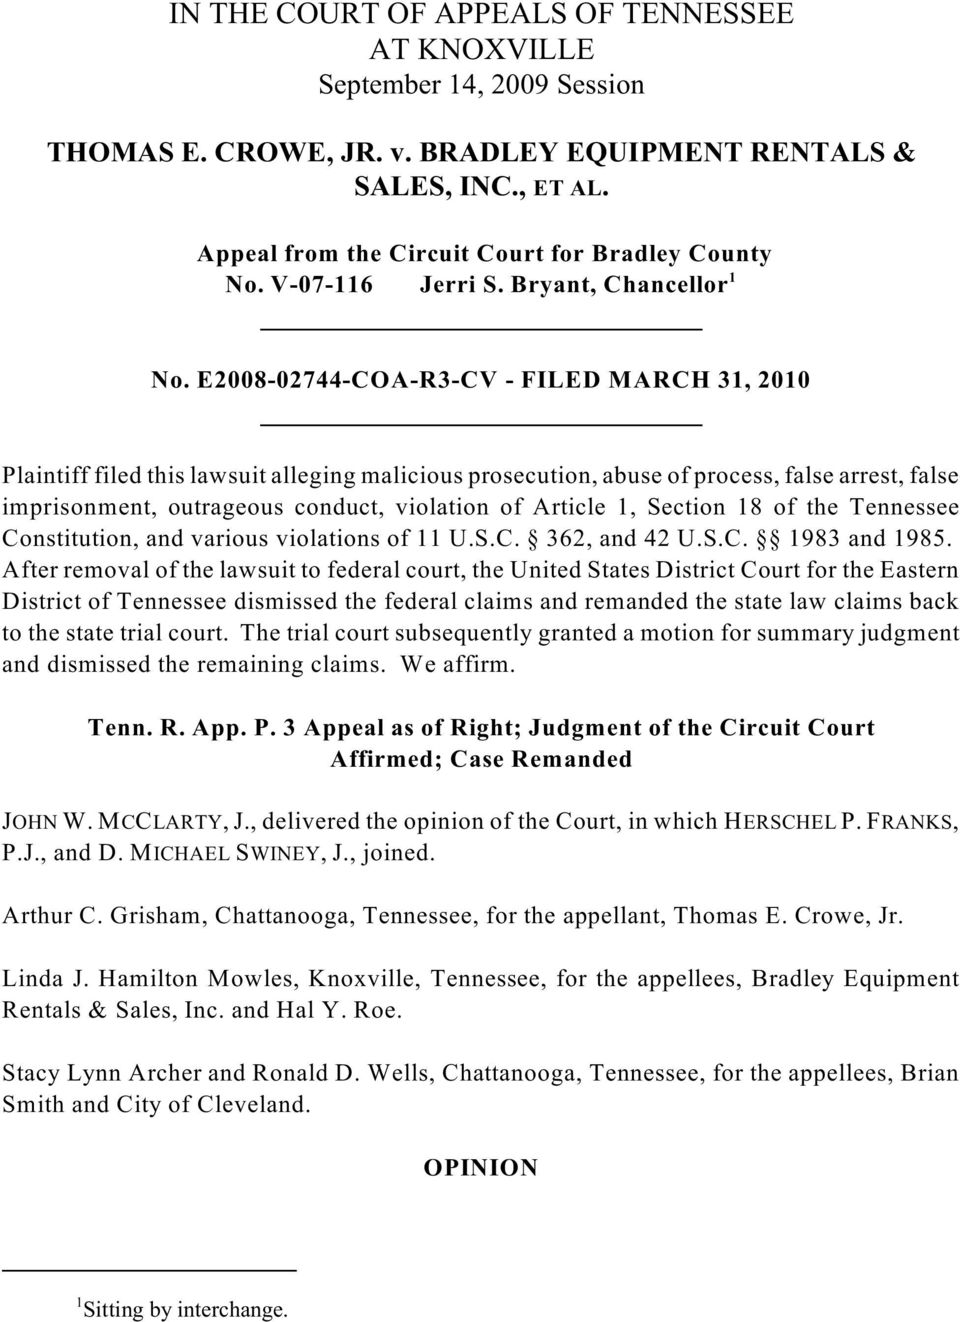 E2008-02744-COA-R3-CV - FILED MARCH 31, 2010 Plaintiff filed this lawsuit alleging malicious prosecution, abuse of process, false arrest, false imprisonment, outrageous conduct, violation of Article